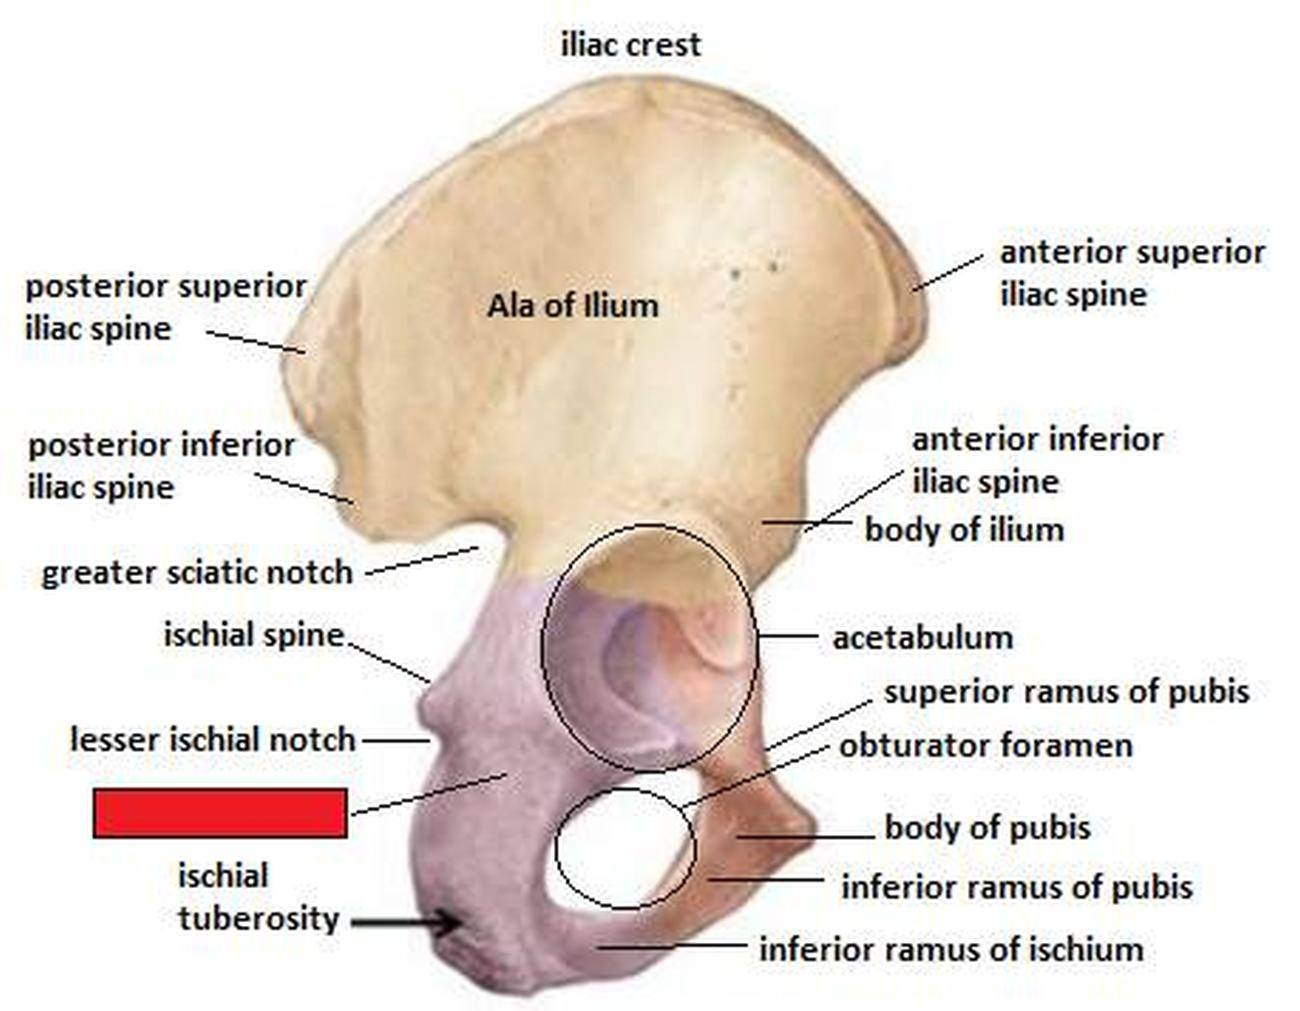 Pictures Of Body Of The Ischium